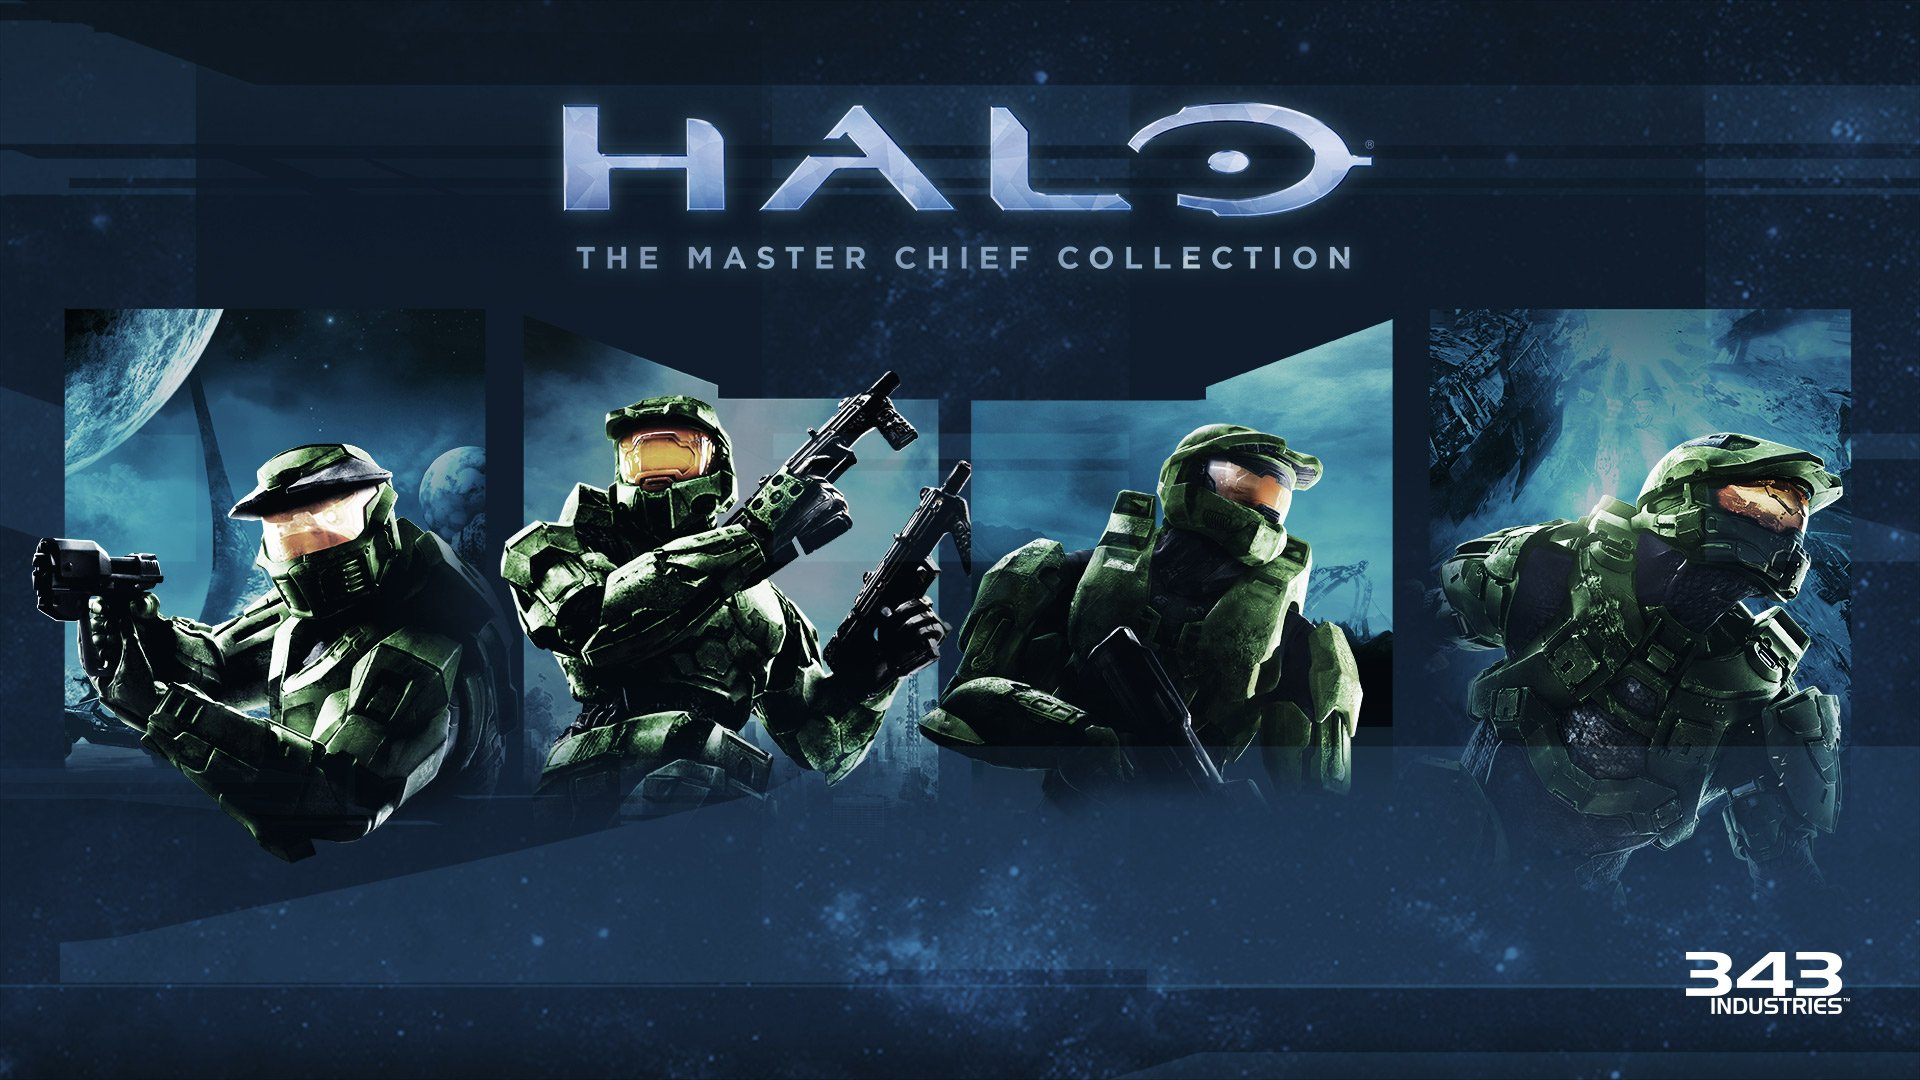 New about The Master Chief collection is coming to Inside Xbox next week